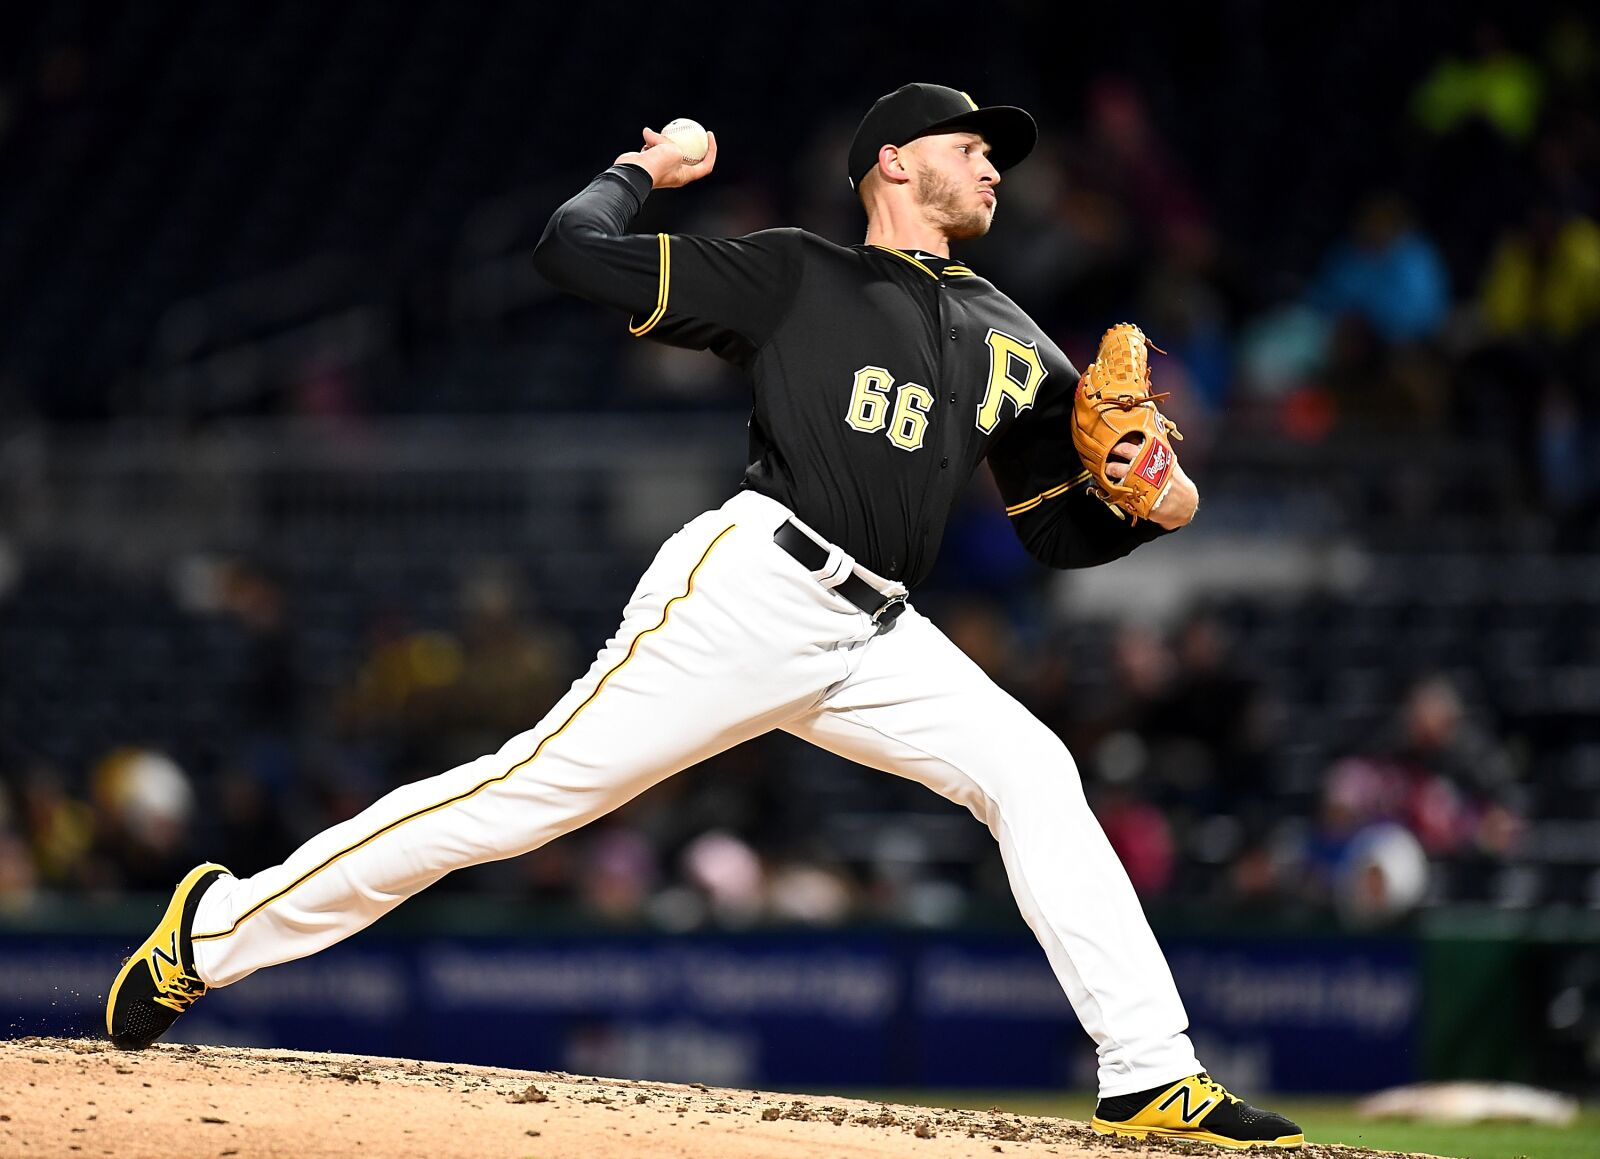 Clint Hurdle is Mismanaging the Pittsburgh Pirates Bullpen 405f1d240eac